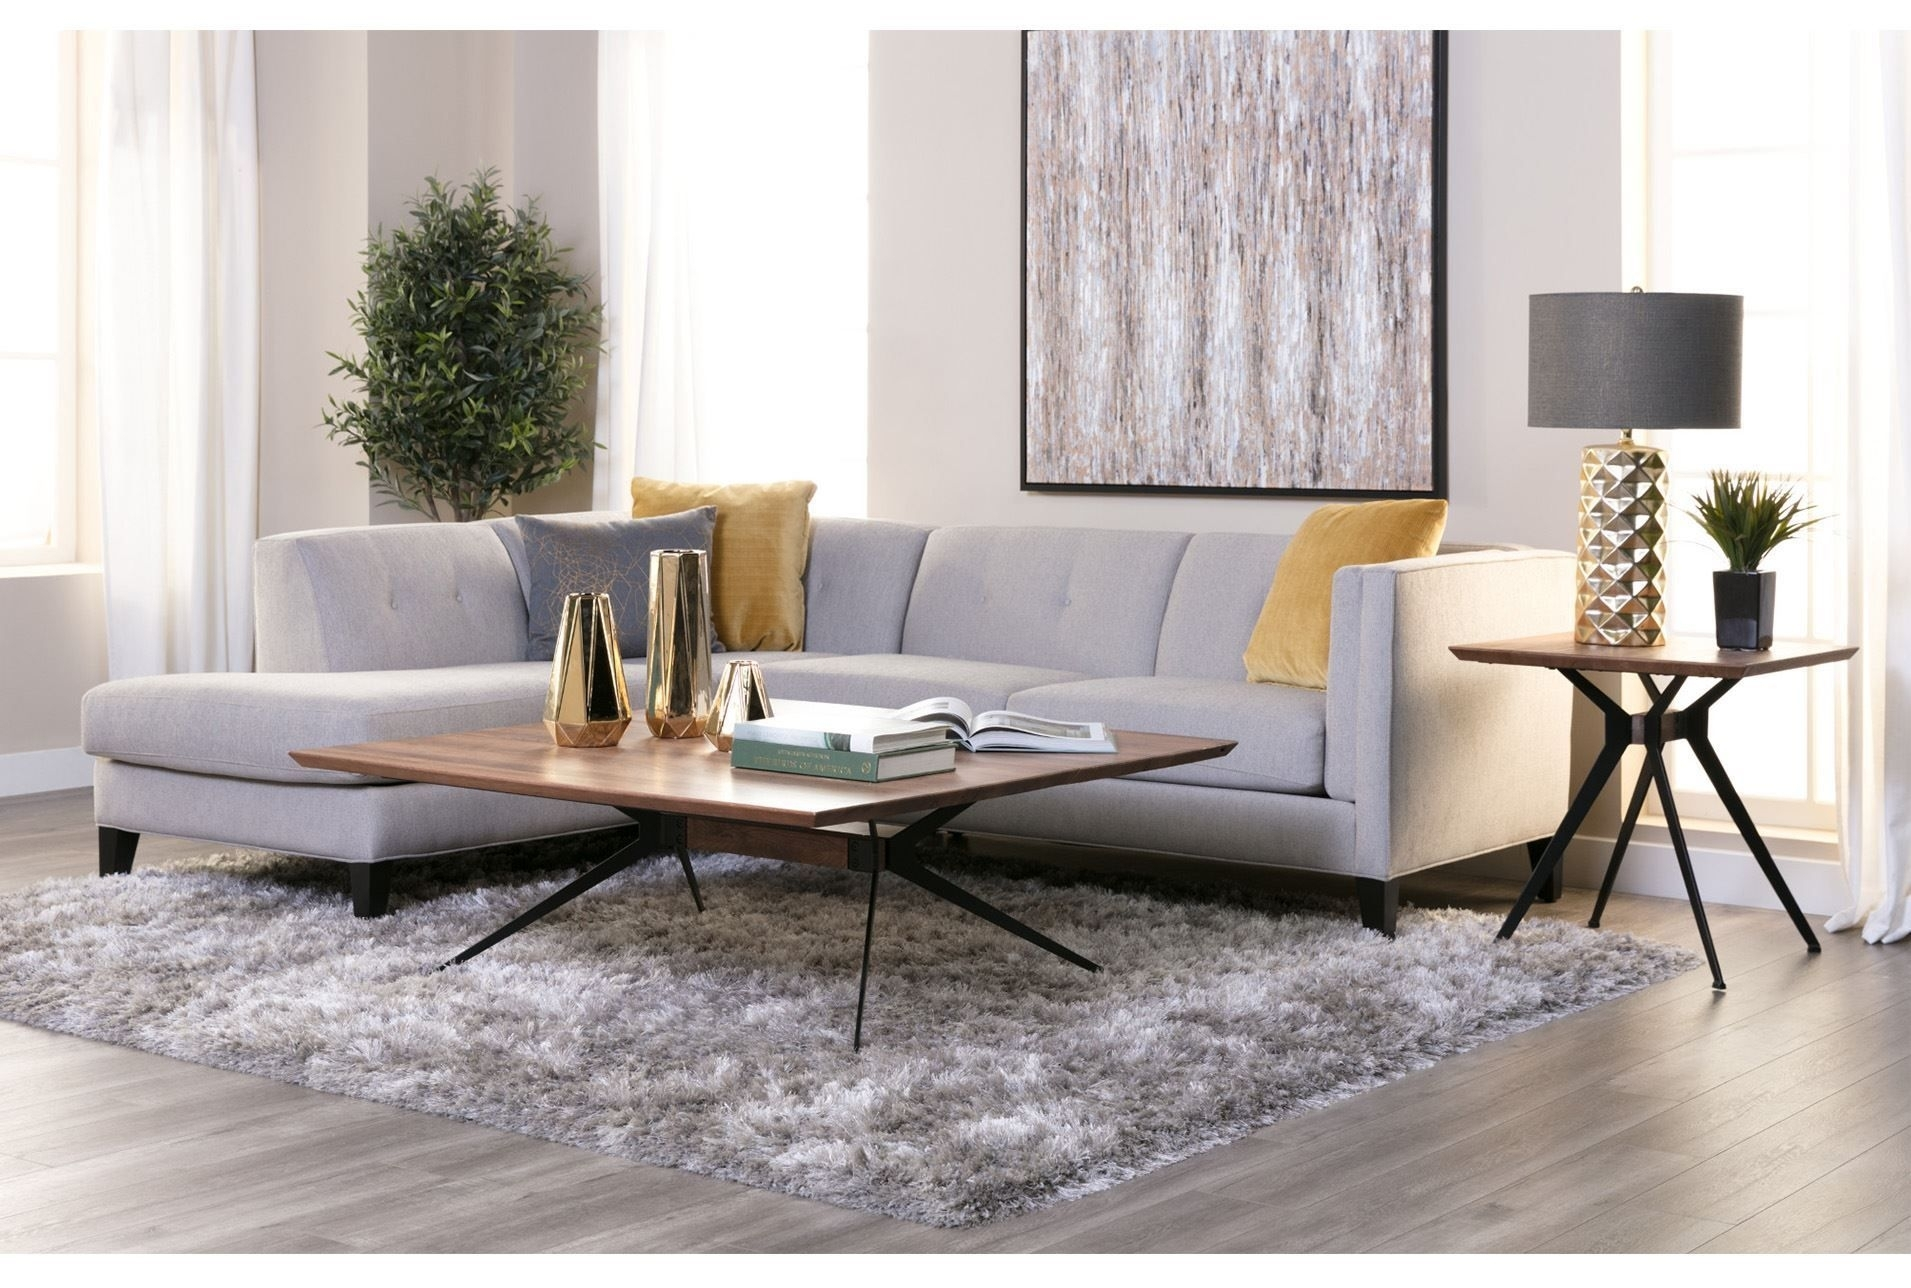 Avery 2 Piece Sectional W/laf Armless Chaise | Home Decor/interior Regarding Avery 2 Piece Sectionals With Laf Armless Chaise (View 2 of 25)